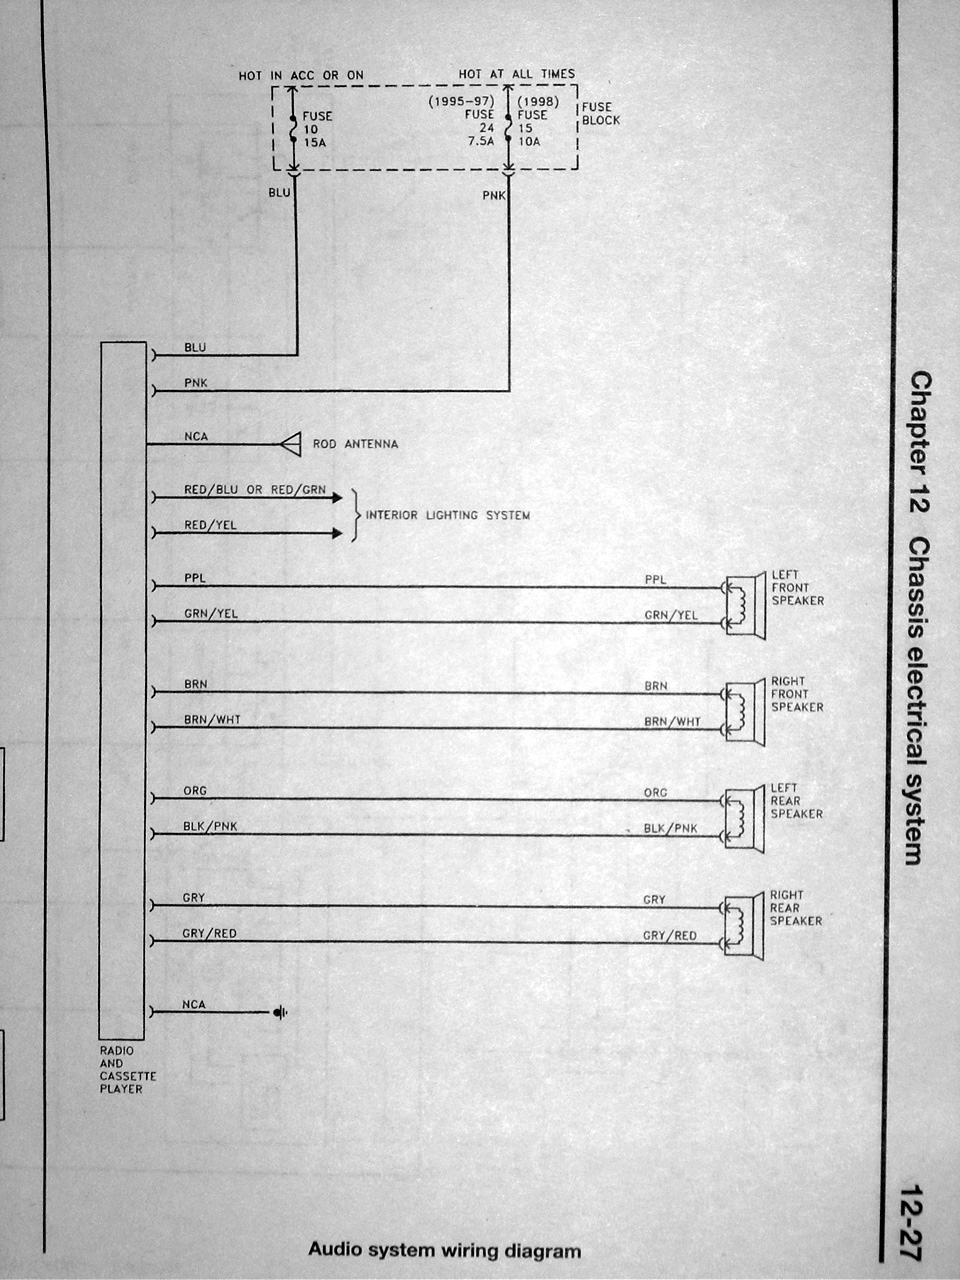 DSC01849 1995 nissan sentra fuse box diagram 1995 ford van fuse box diagram  at creativeand.co